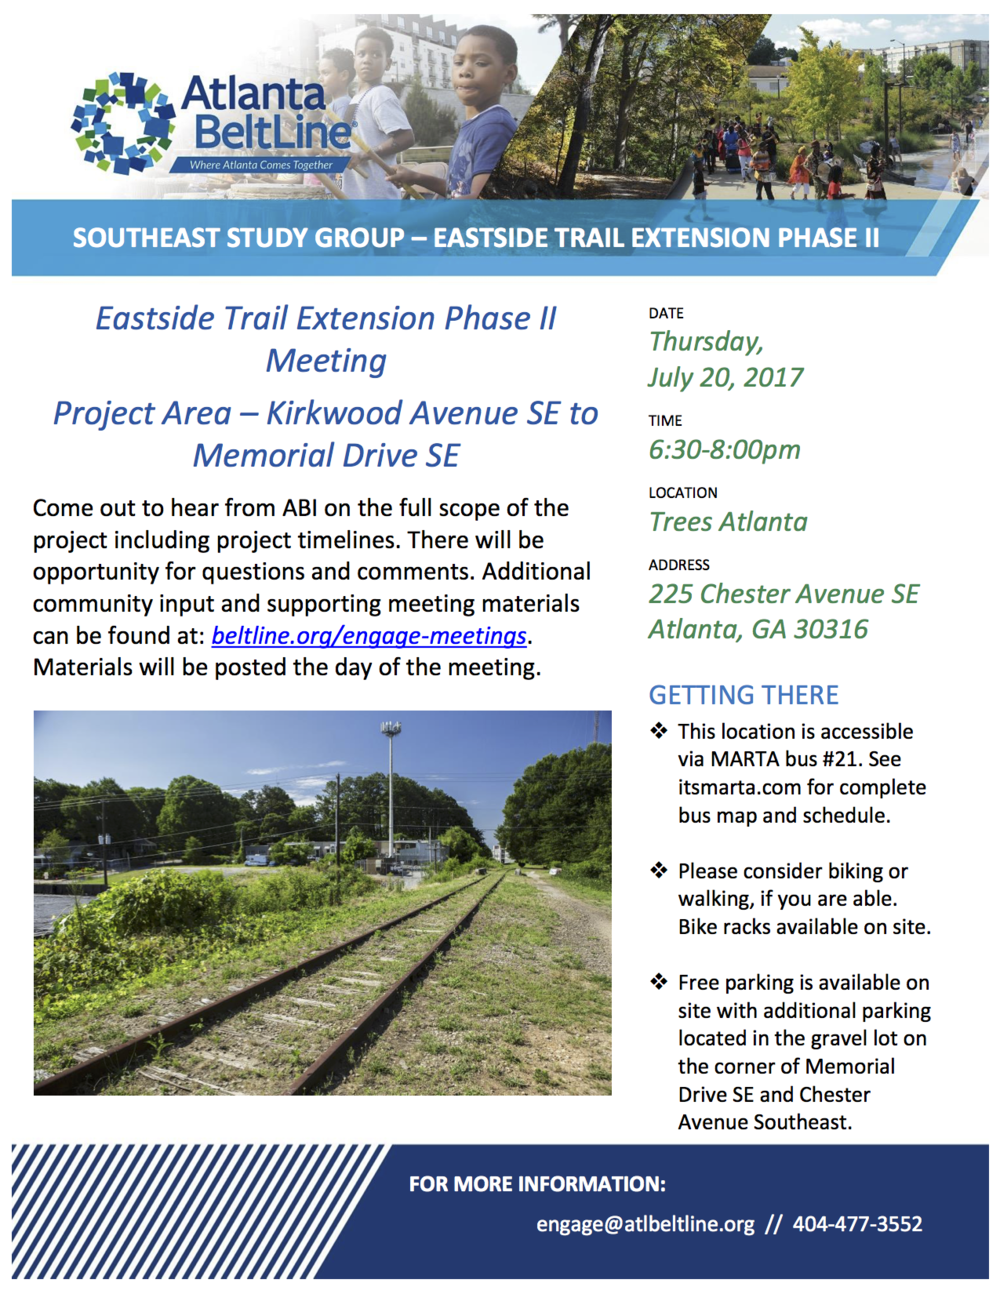 Atlanta Beltline Southeast Study Group 7/20/2017